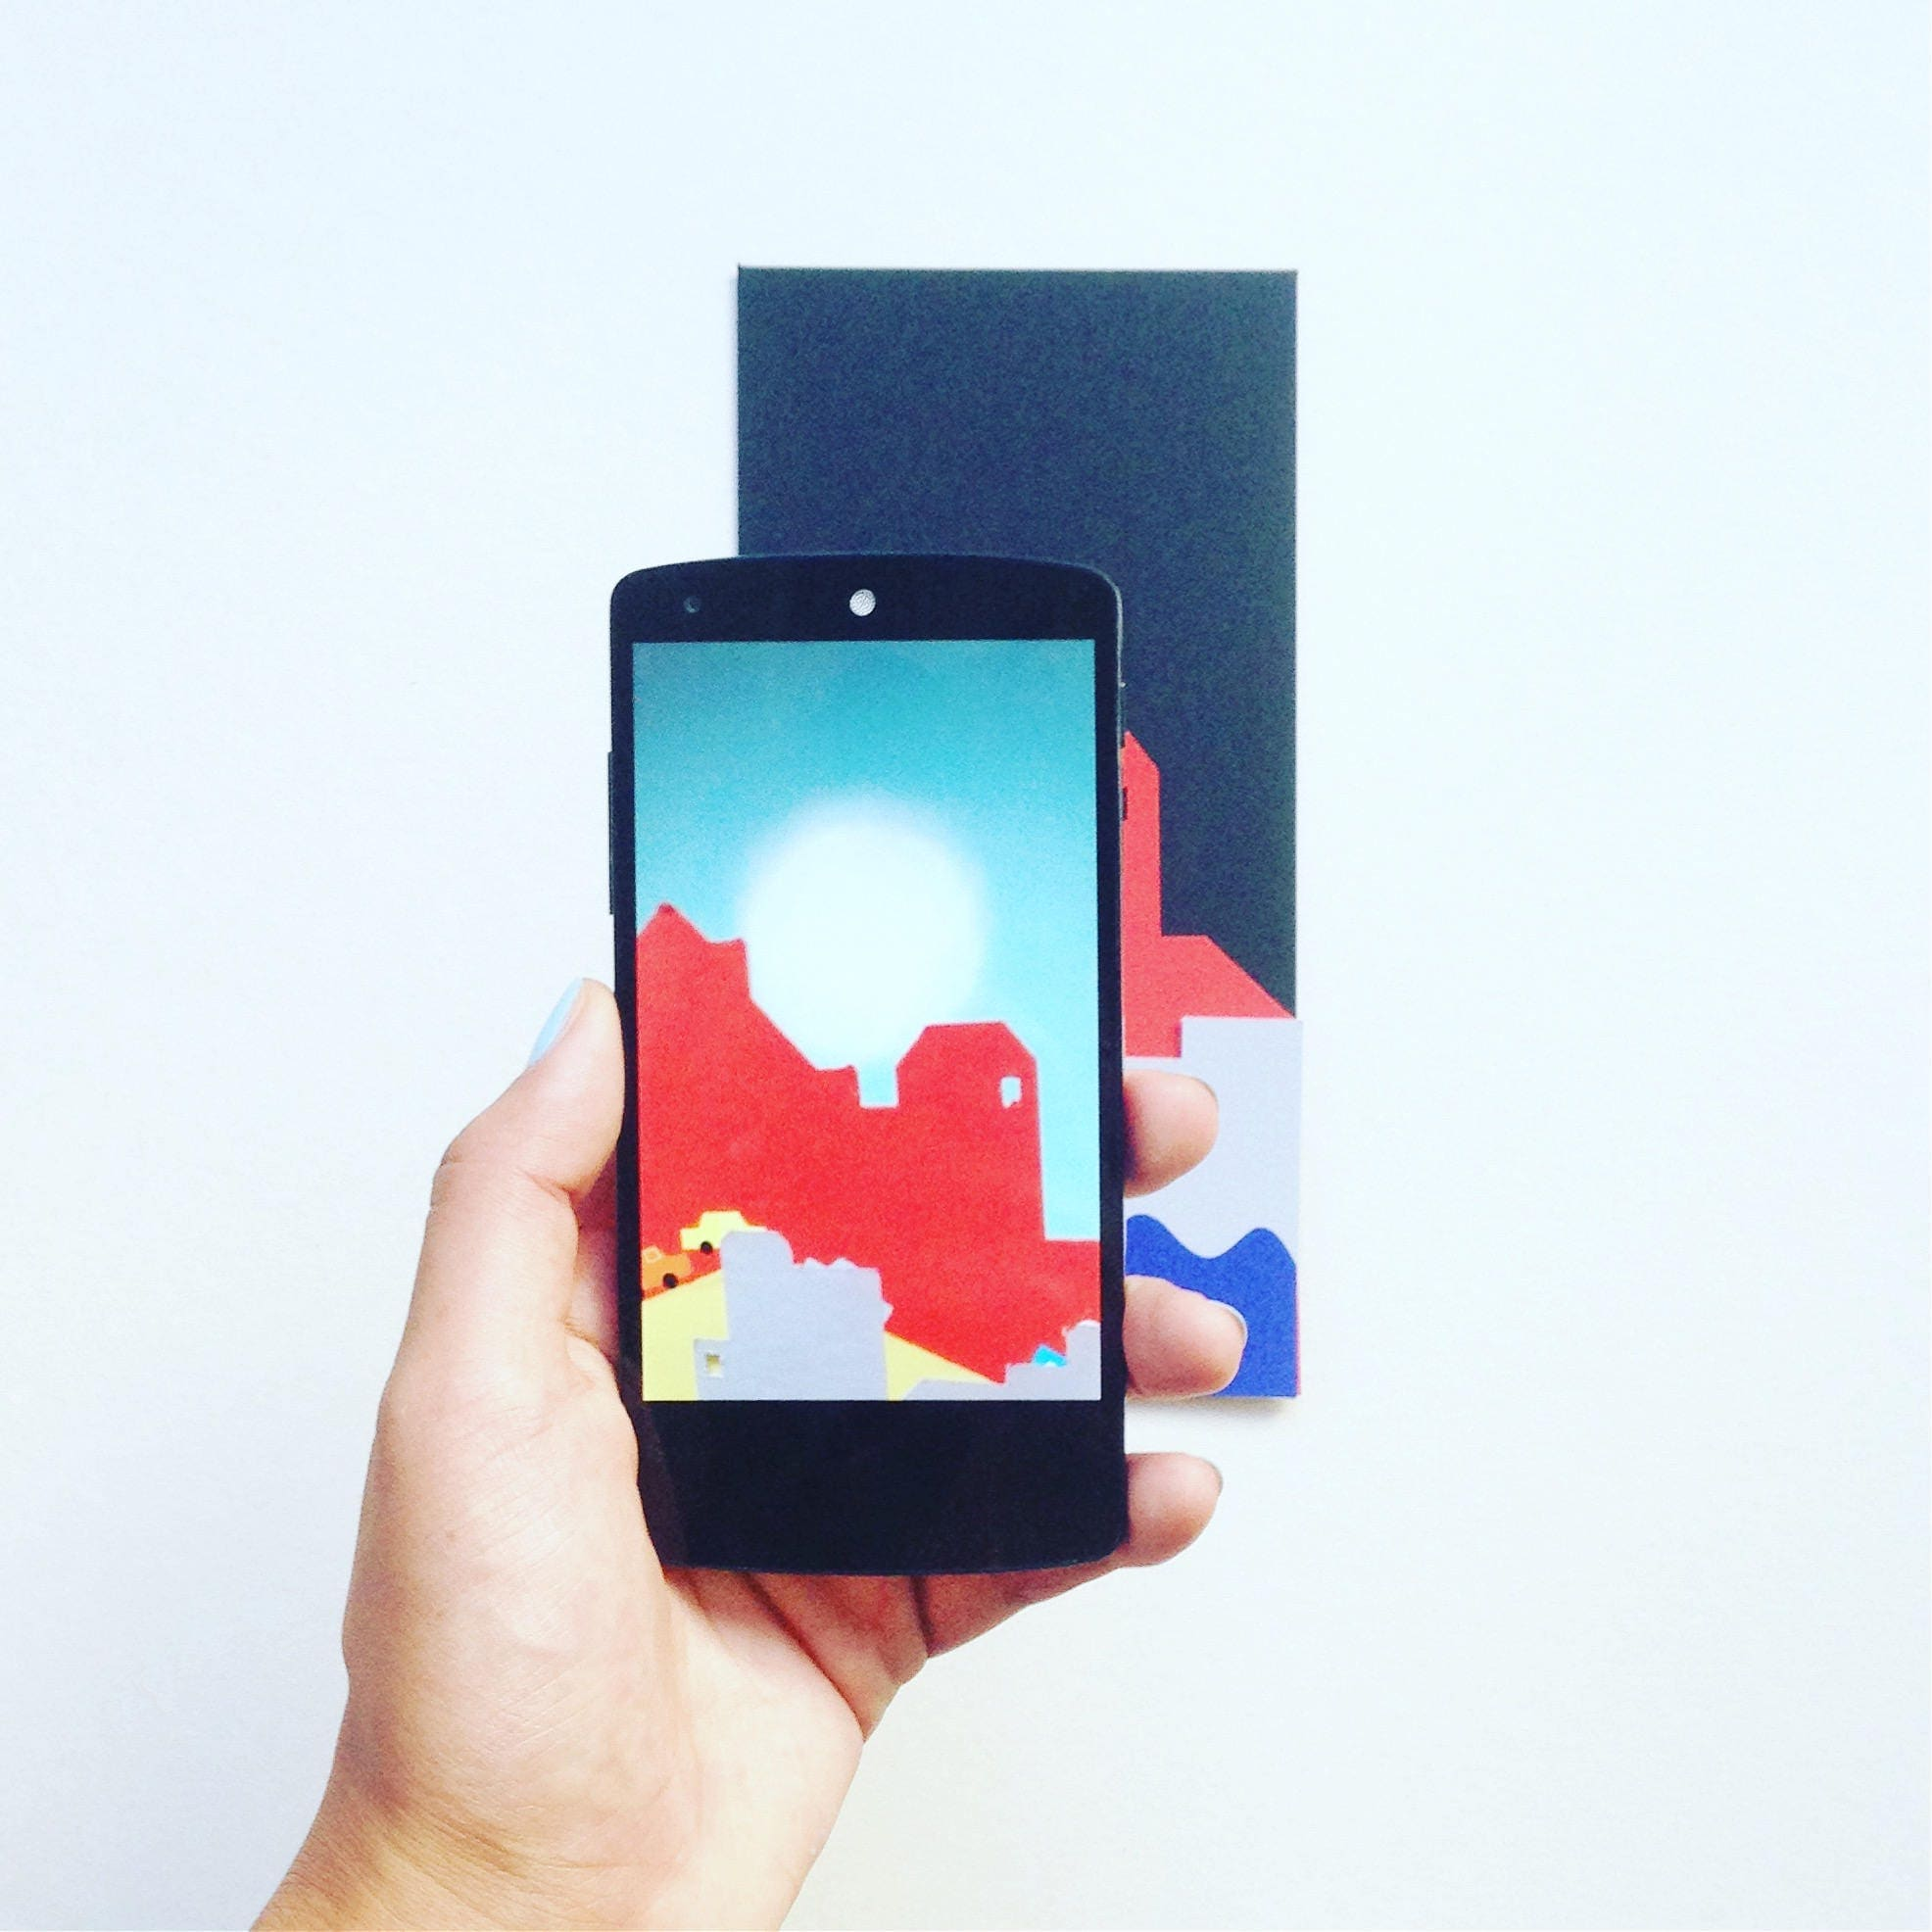 RISING SUN Animated Paper Card in Augmented reality from the